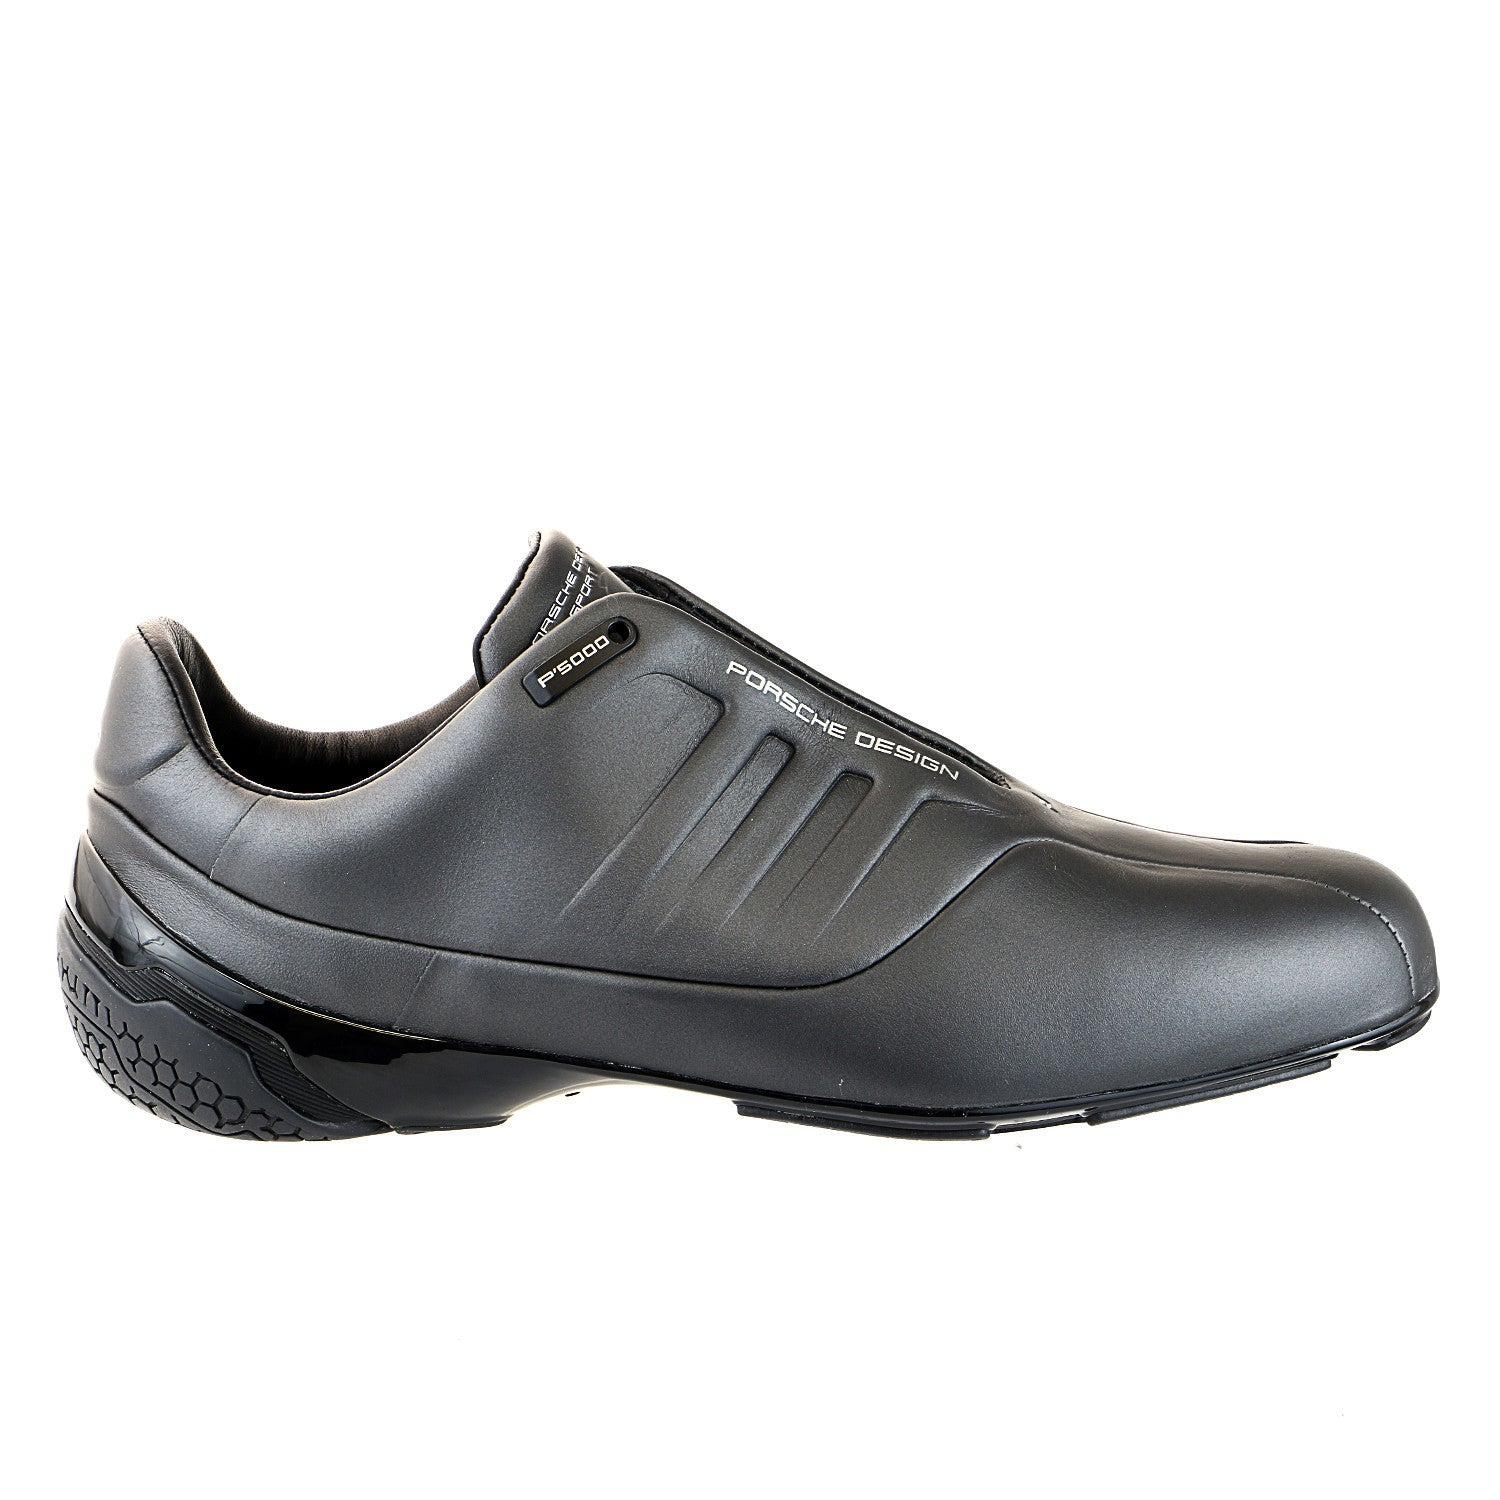 timeless design f3f6e 1e59b Porsche Design M ELS Formotion Fashion Sneaker Driving Shoe - Black - Mens